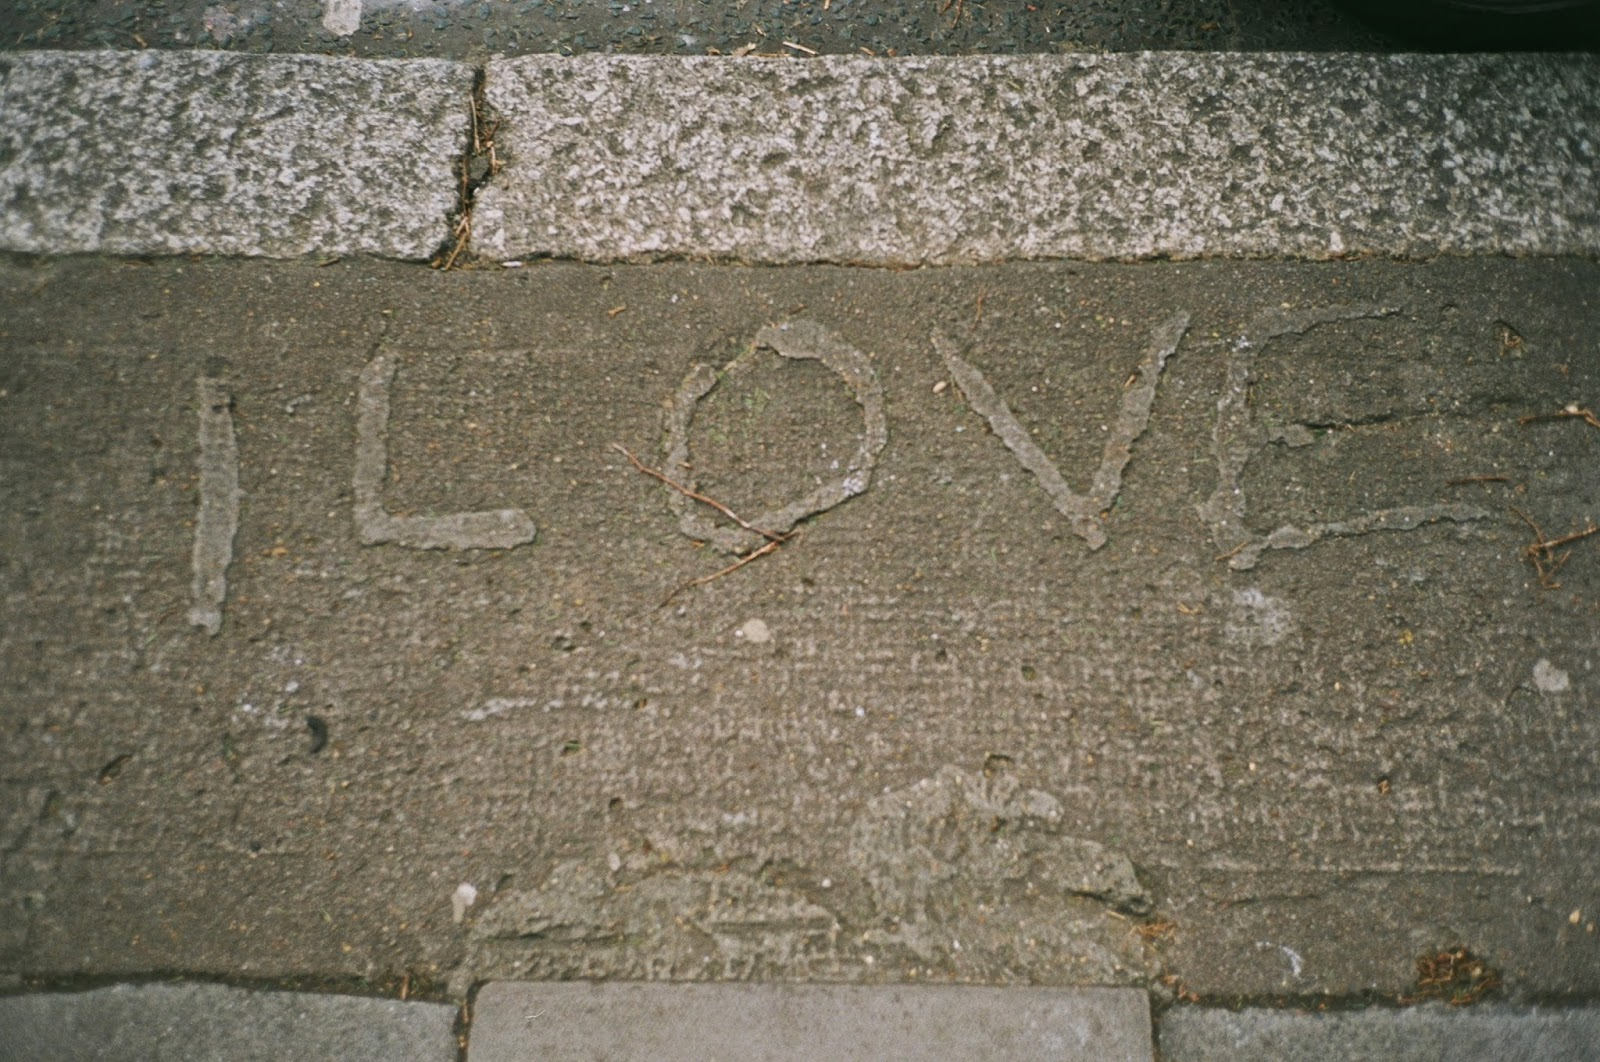 CONCRETE, GRAFFITI, LOVE, VESTIGIAL LETTERING, HAMPSTEAD, STREET ART, URBAN MESSAGES, SUBVERSION, © VAC 100 DAYS 4 MILLION CONVERSATIONS